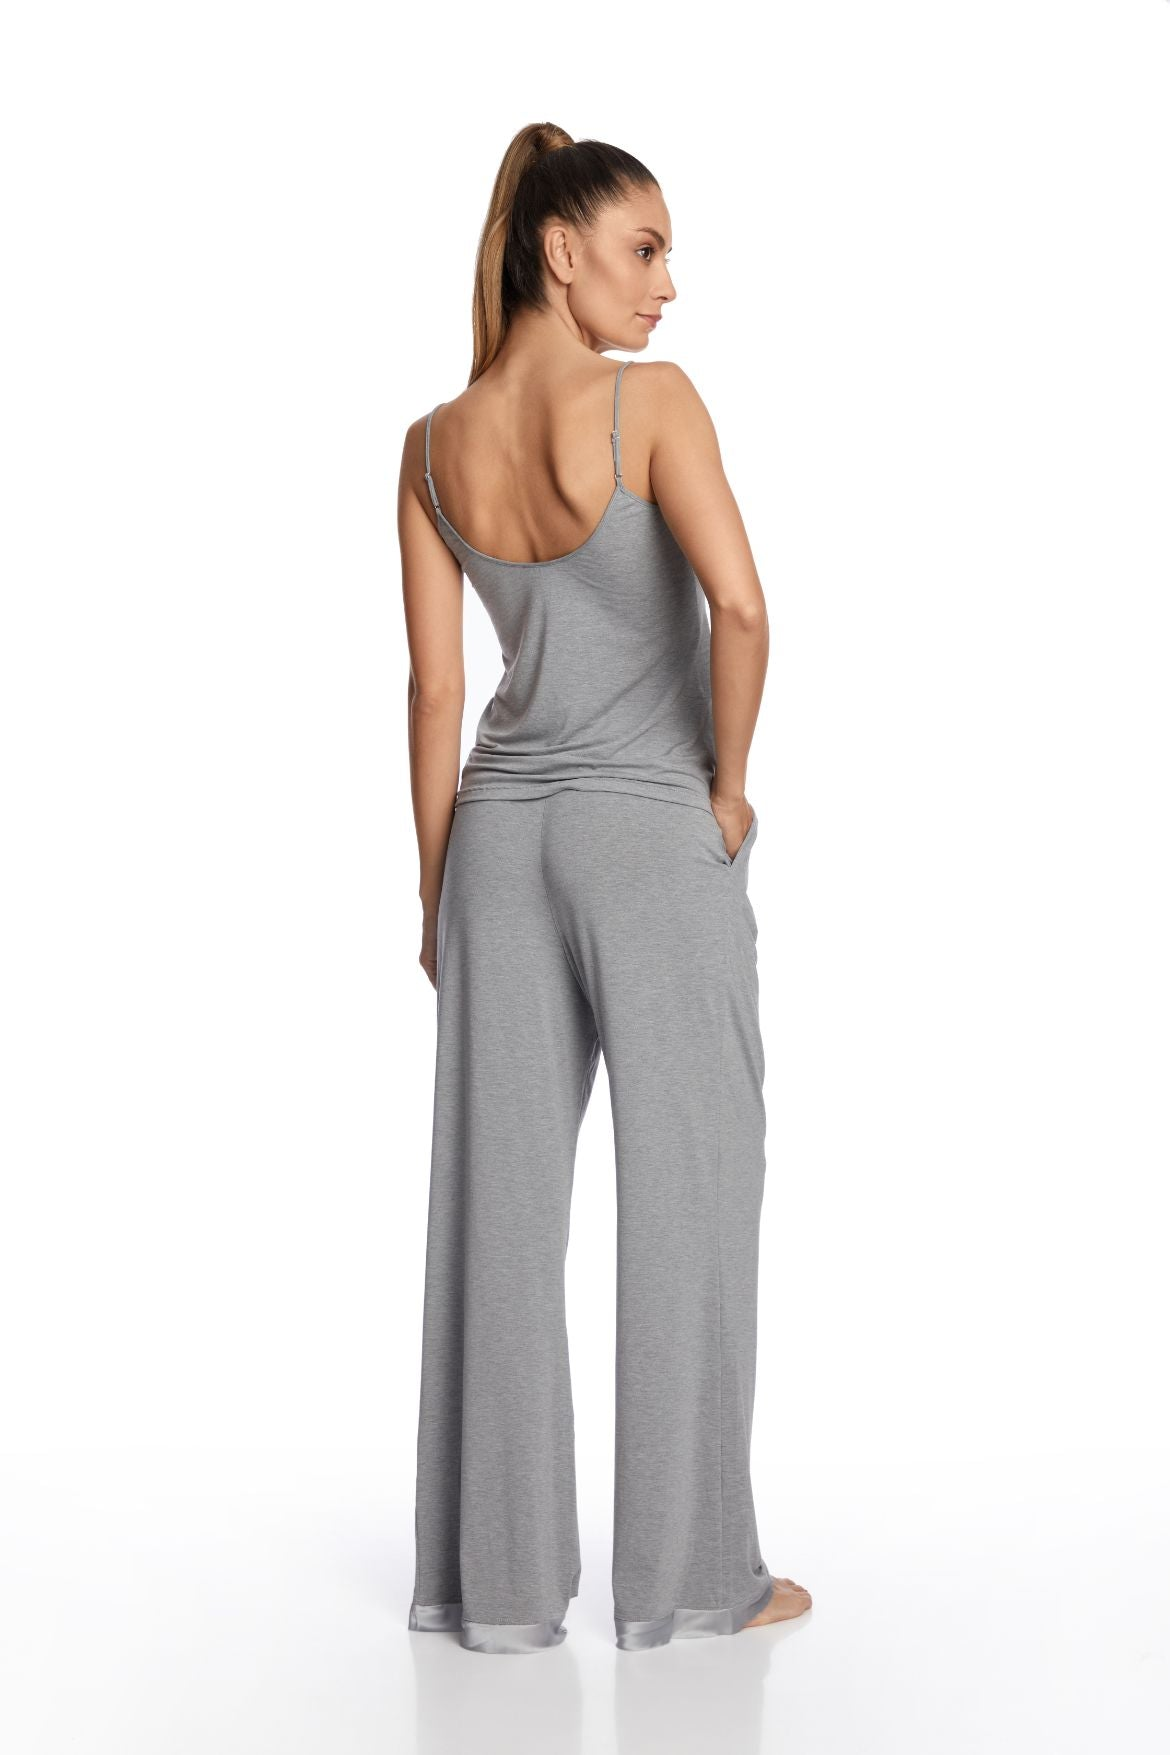 Heavenly Freshness Tank Top in Glacier Grey - I.D. Sarrieri